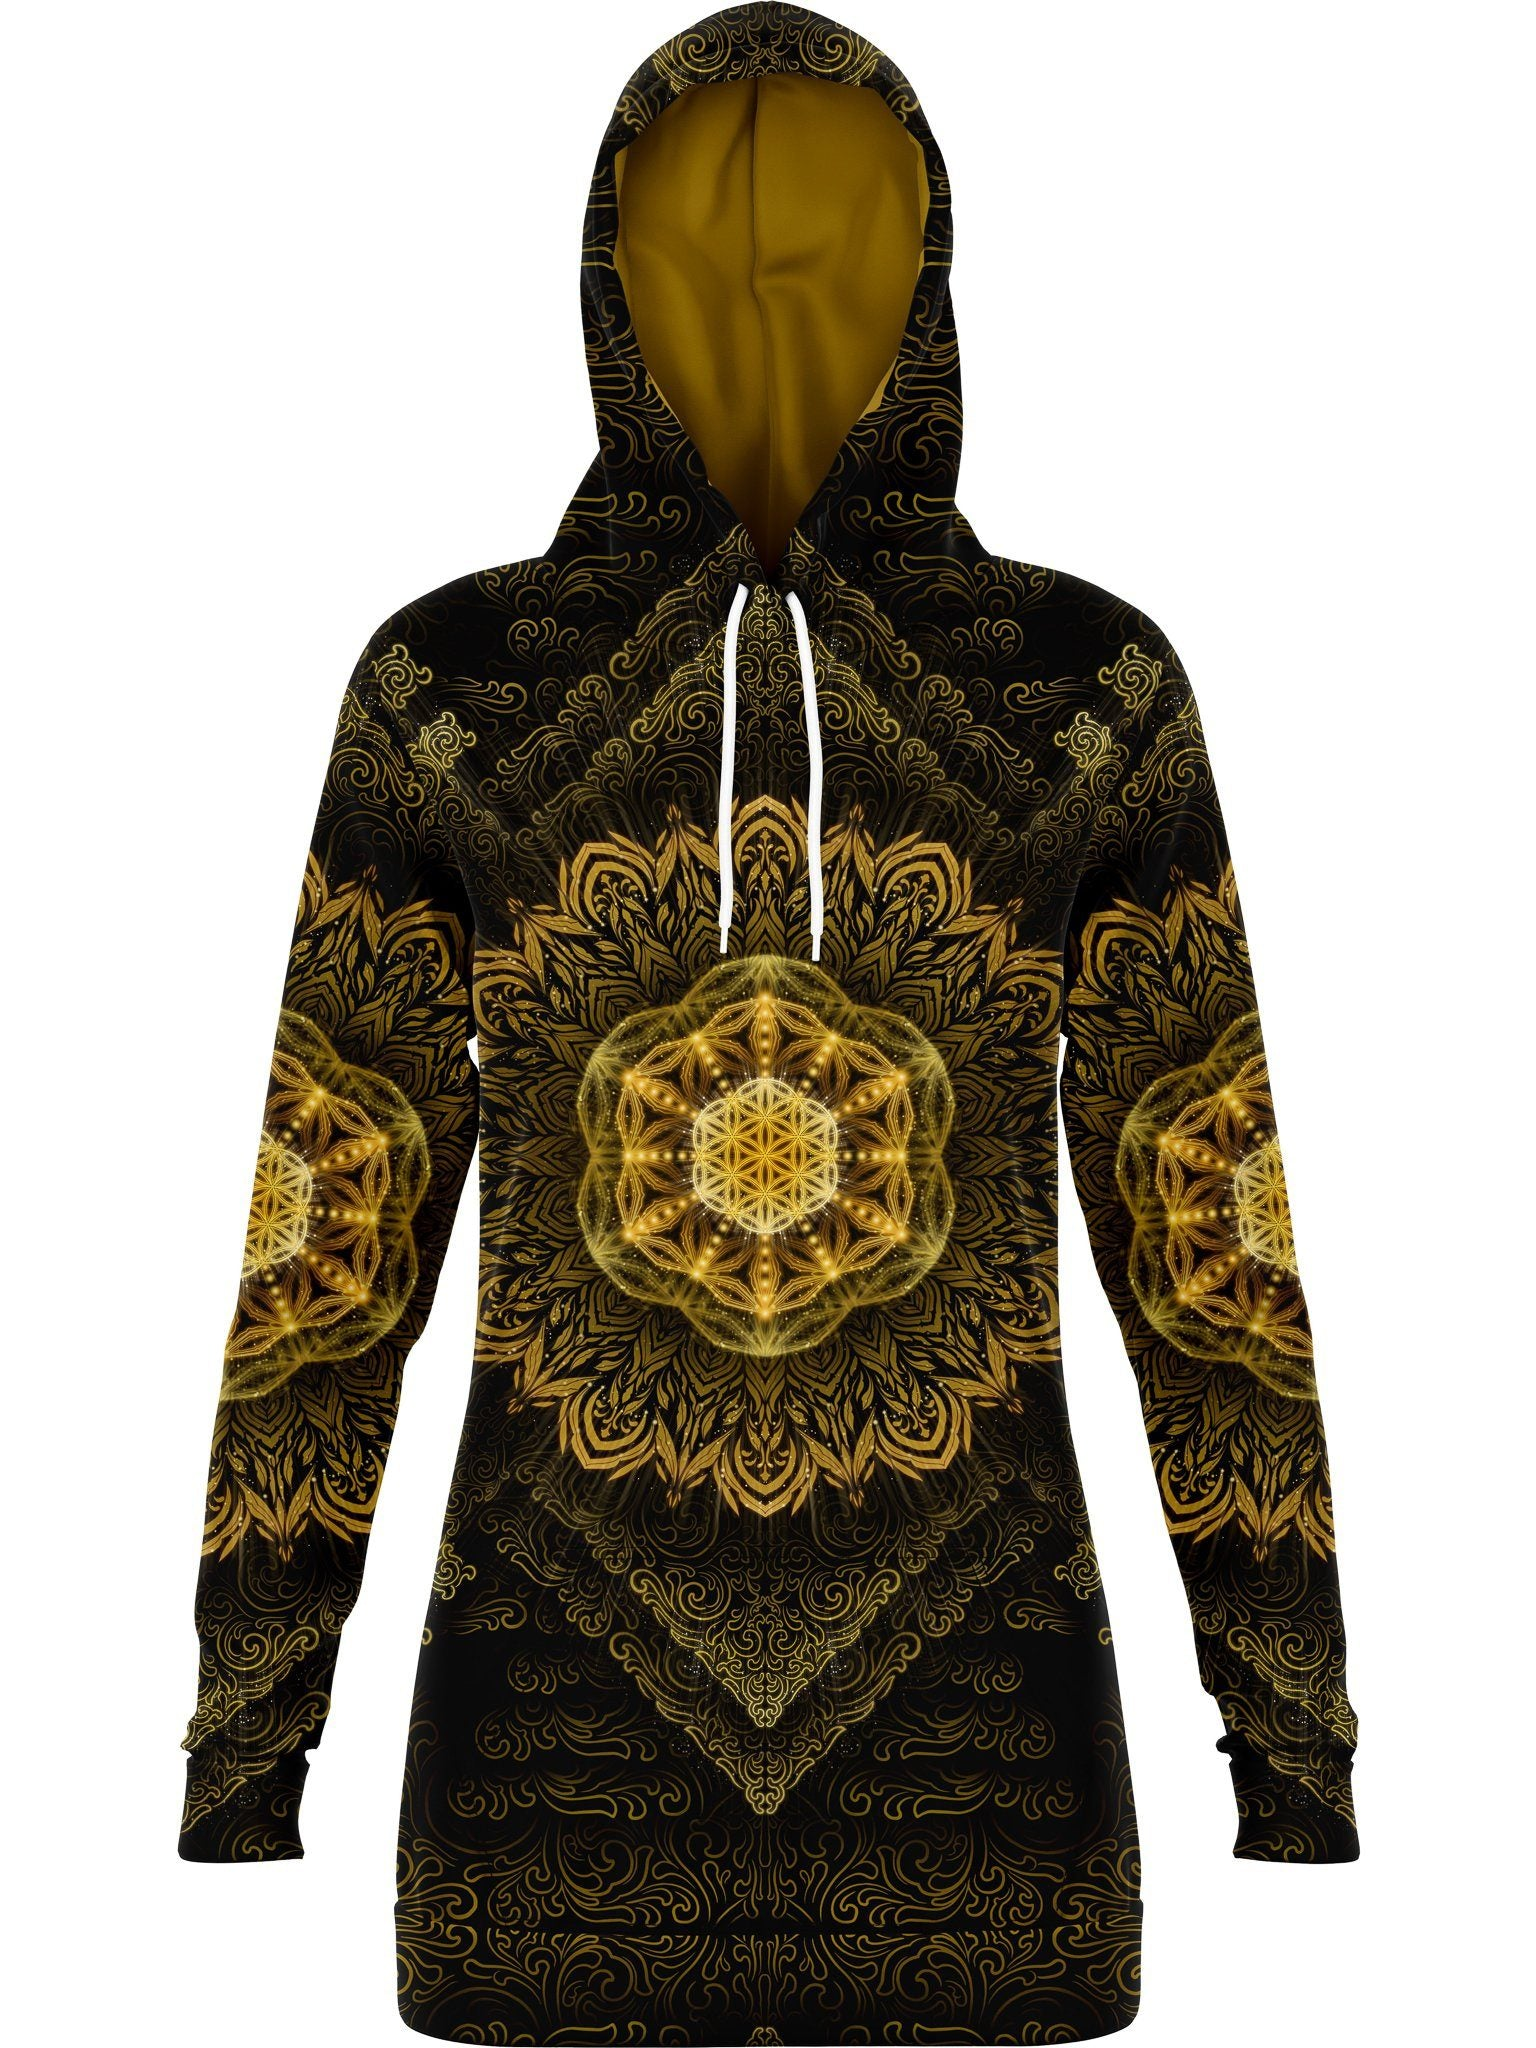 Tibetan Mantra Hooded Dress Hoodie Dress Electro Threads